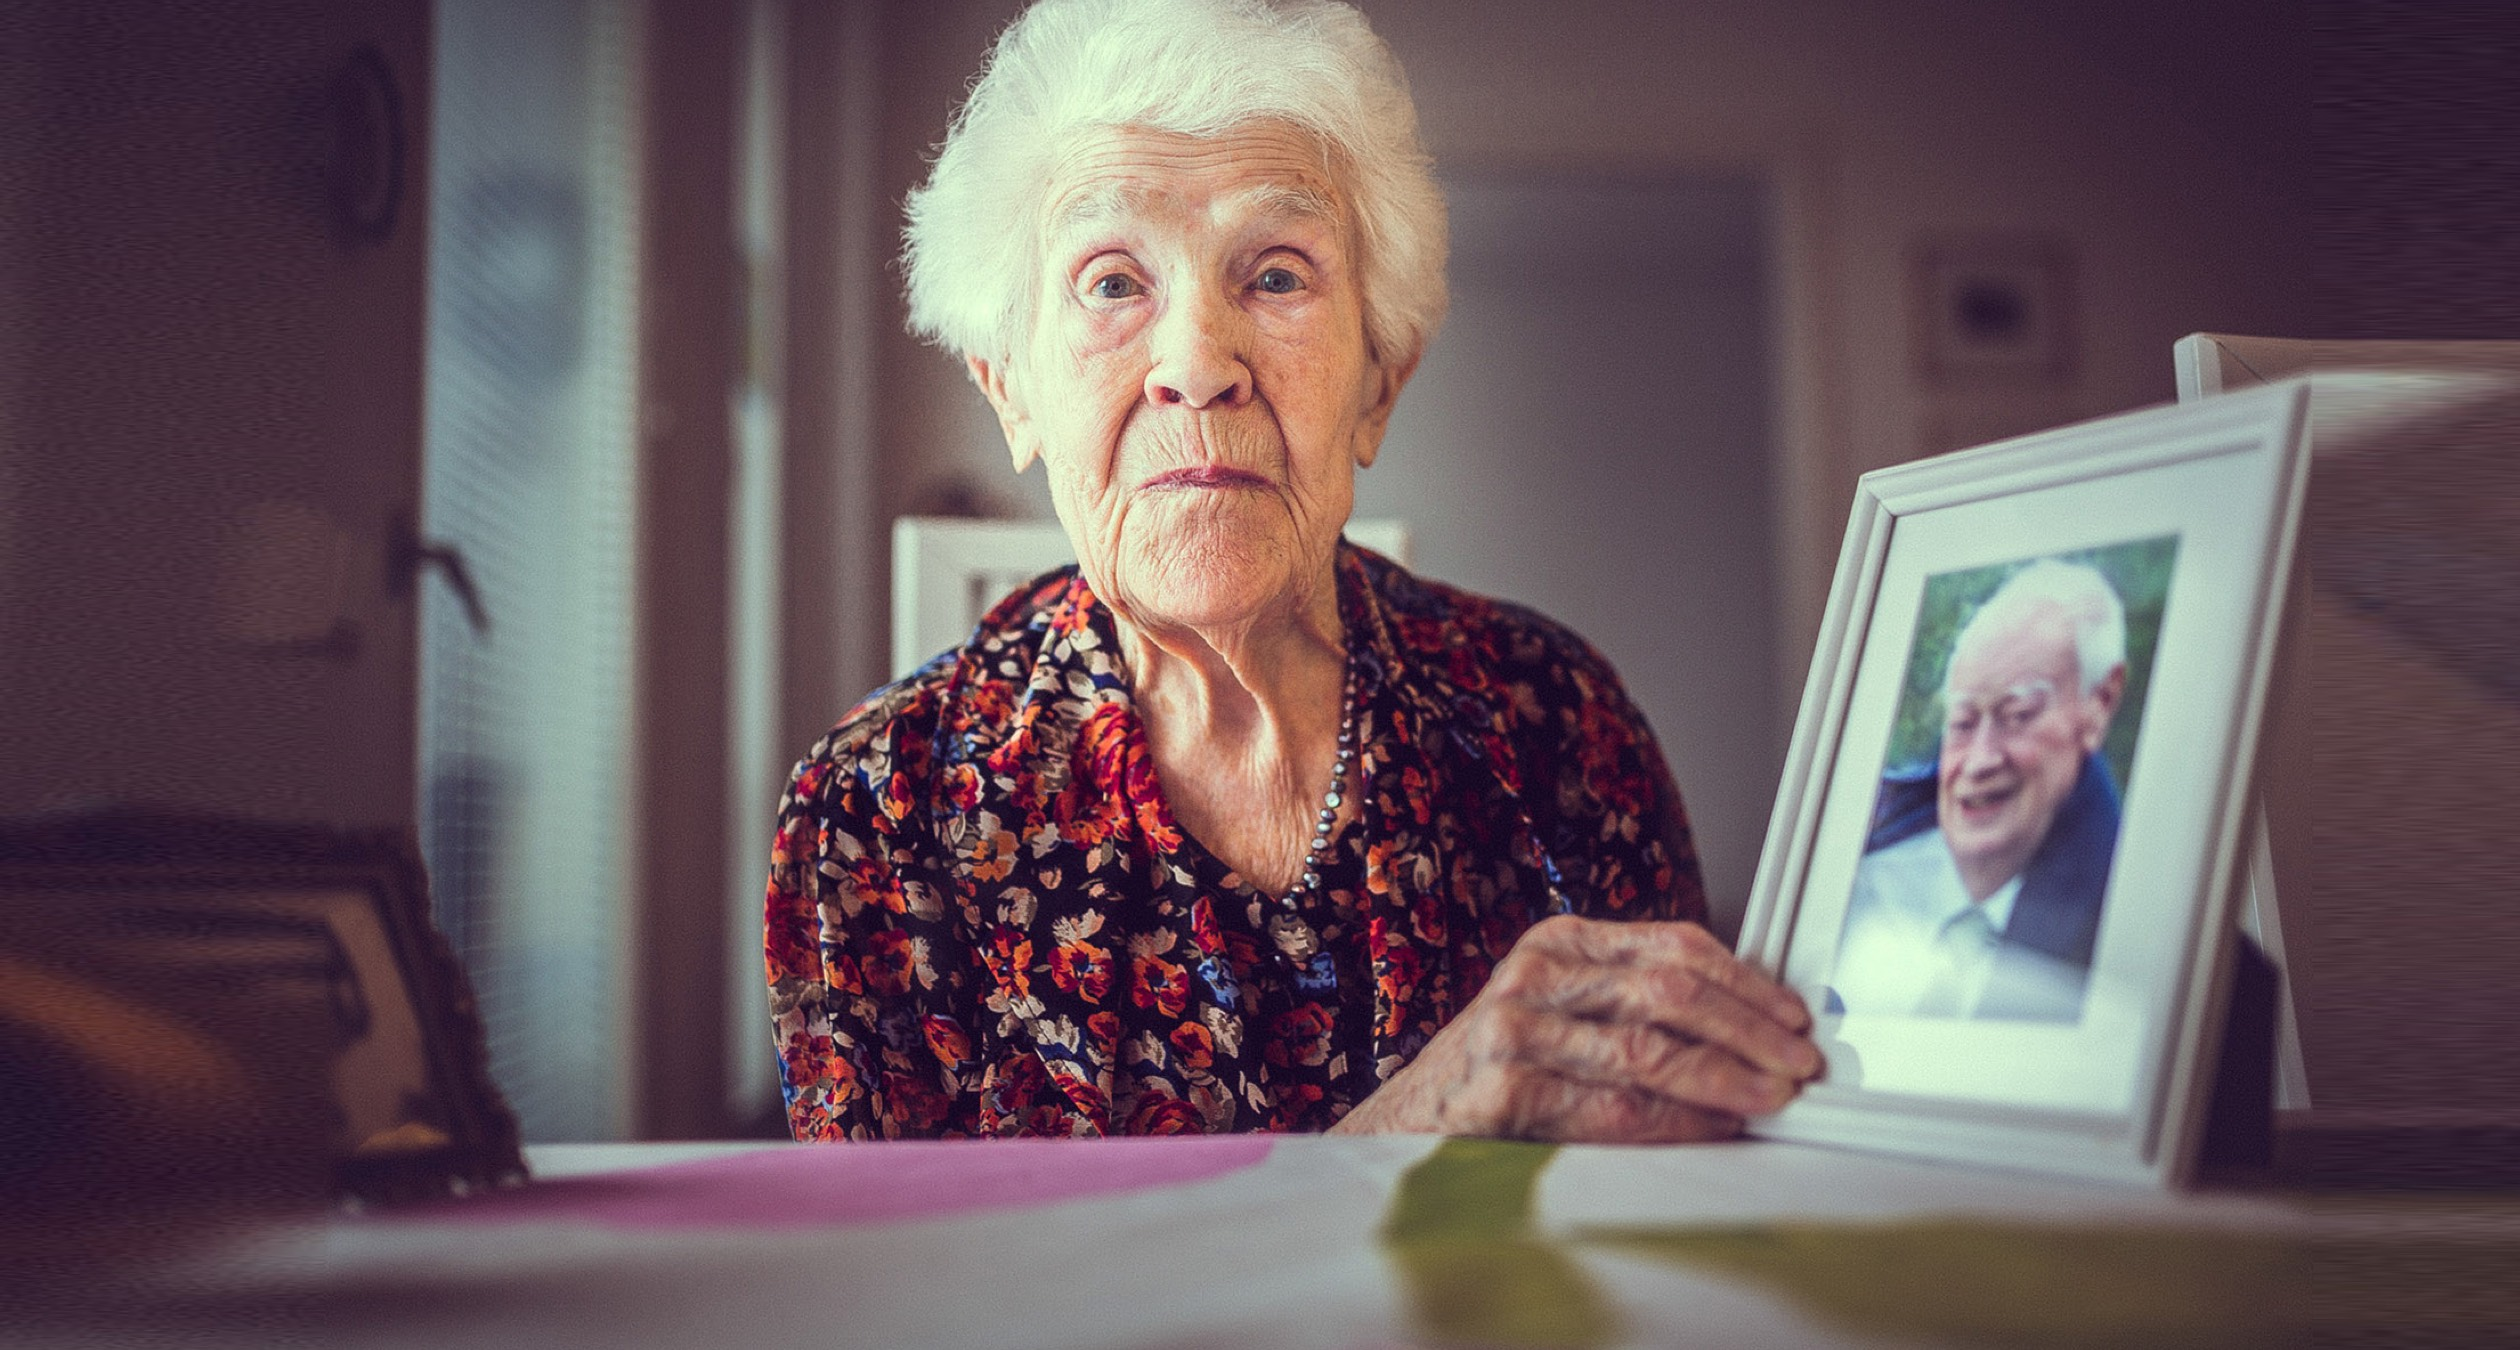 Elderly Woman Holding Image of Husband